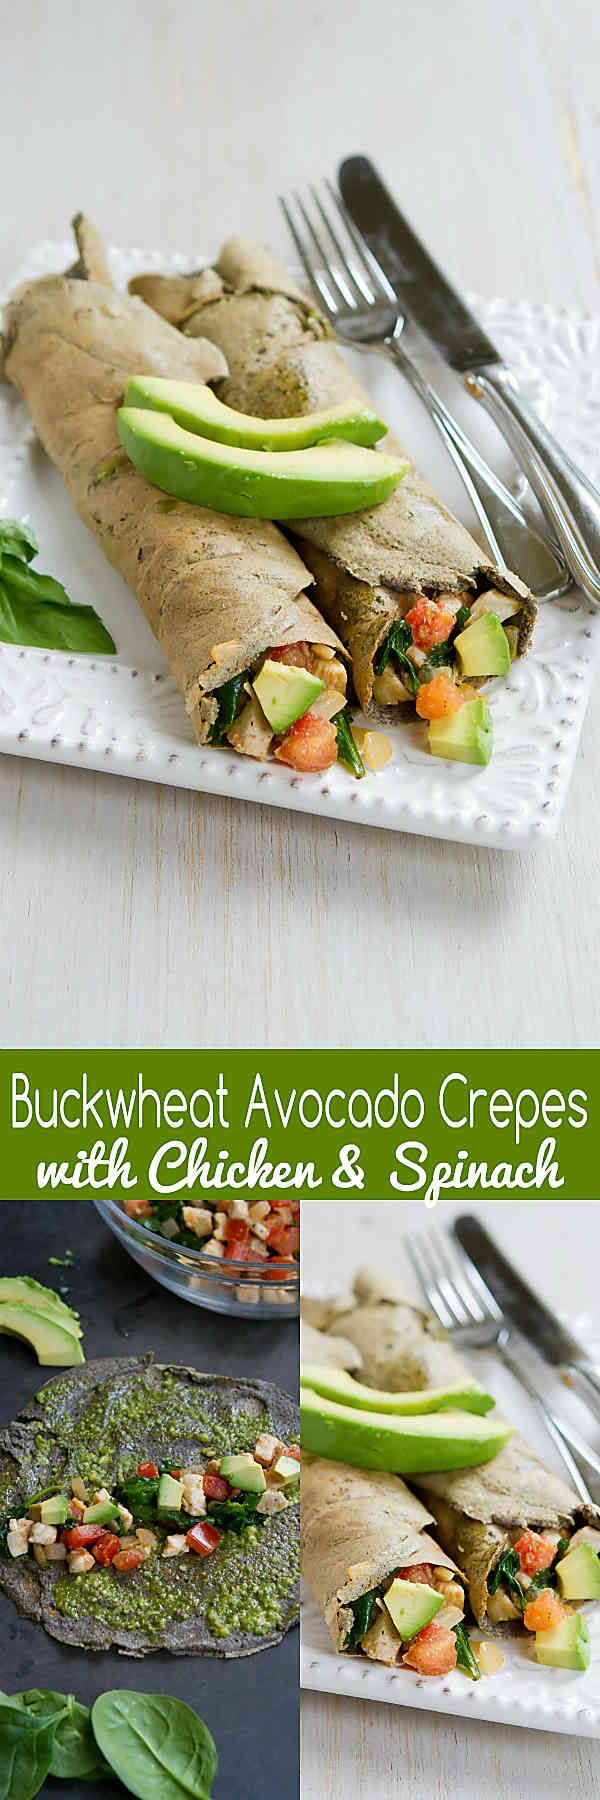 These Buckwheat Avocado Crepes with Chicken and Spinach make a fantastic savory brunch or dinner meal! 195 calories and 5 Weight Watchers SmartPoints